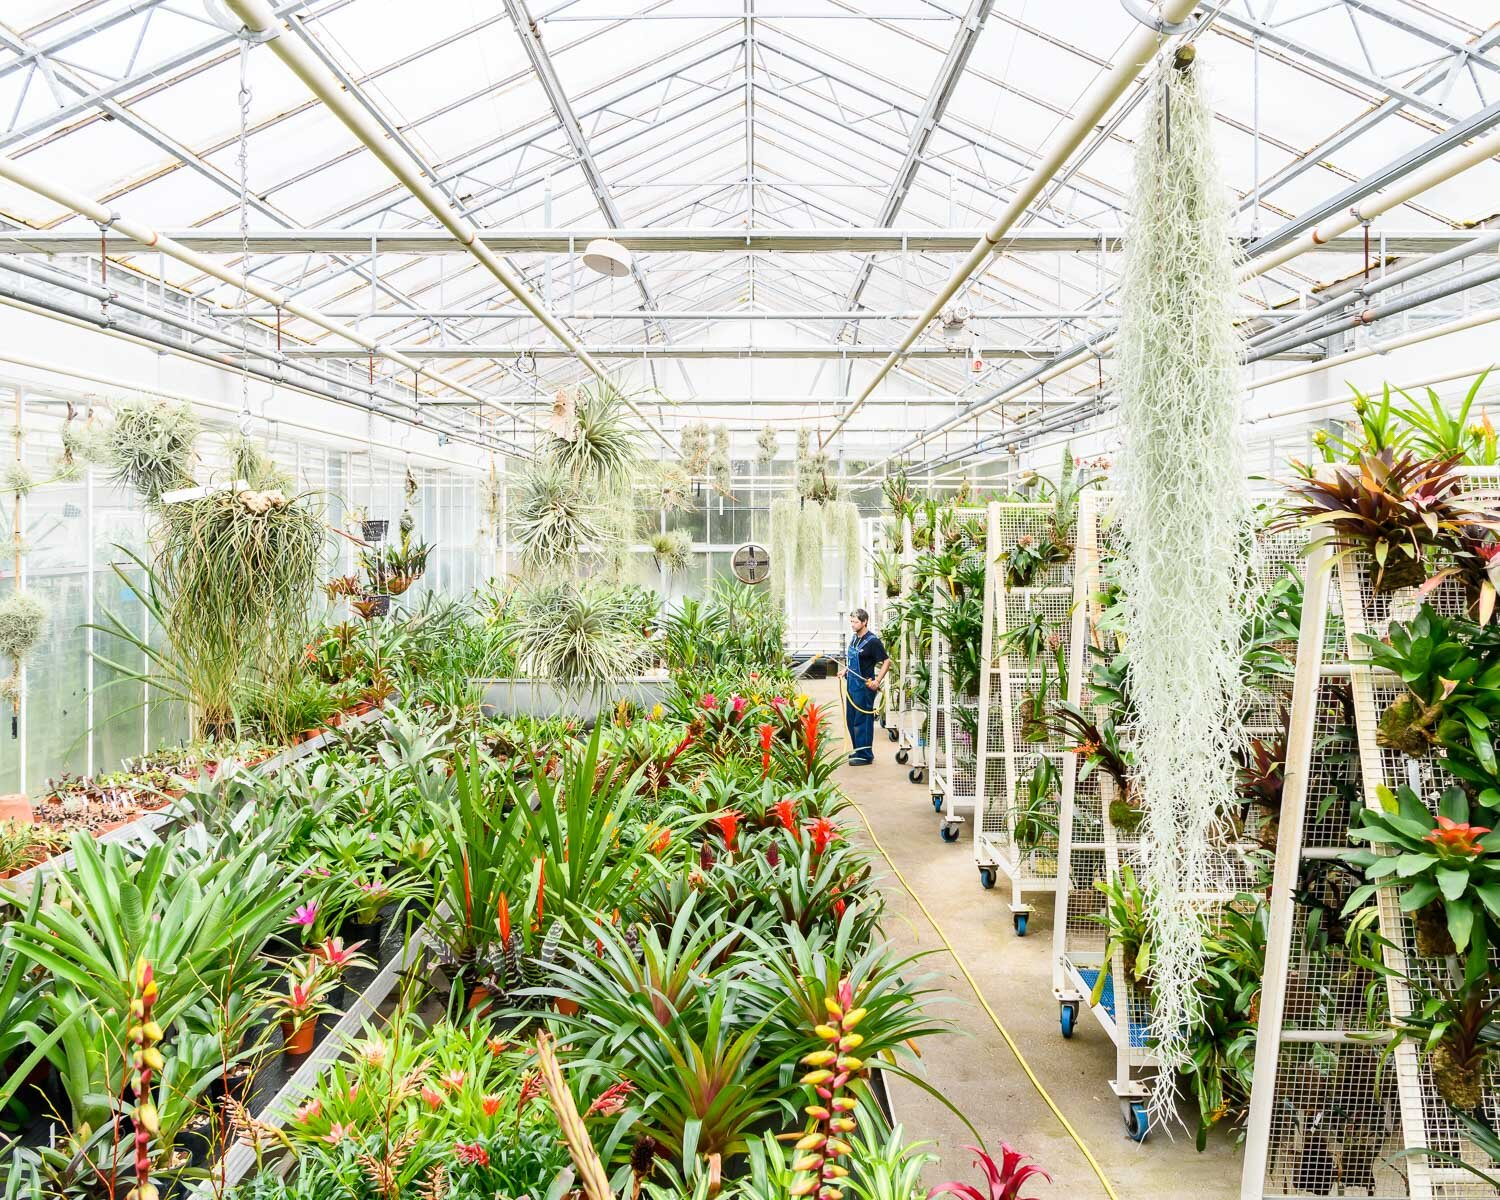 Plants, such as bromeliads and epiphytes, are cultivated in computer-controlled climate zones at Kew